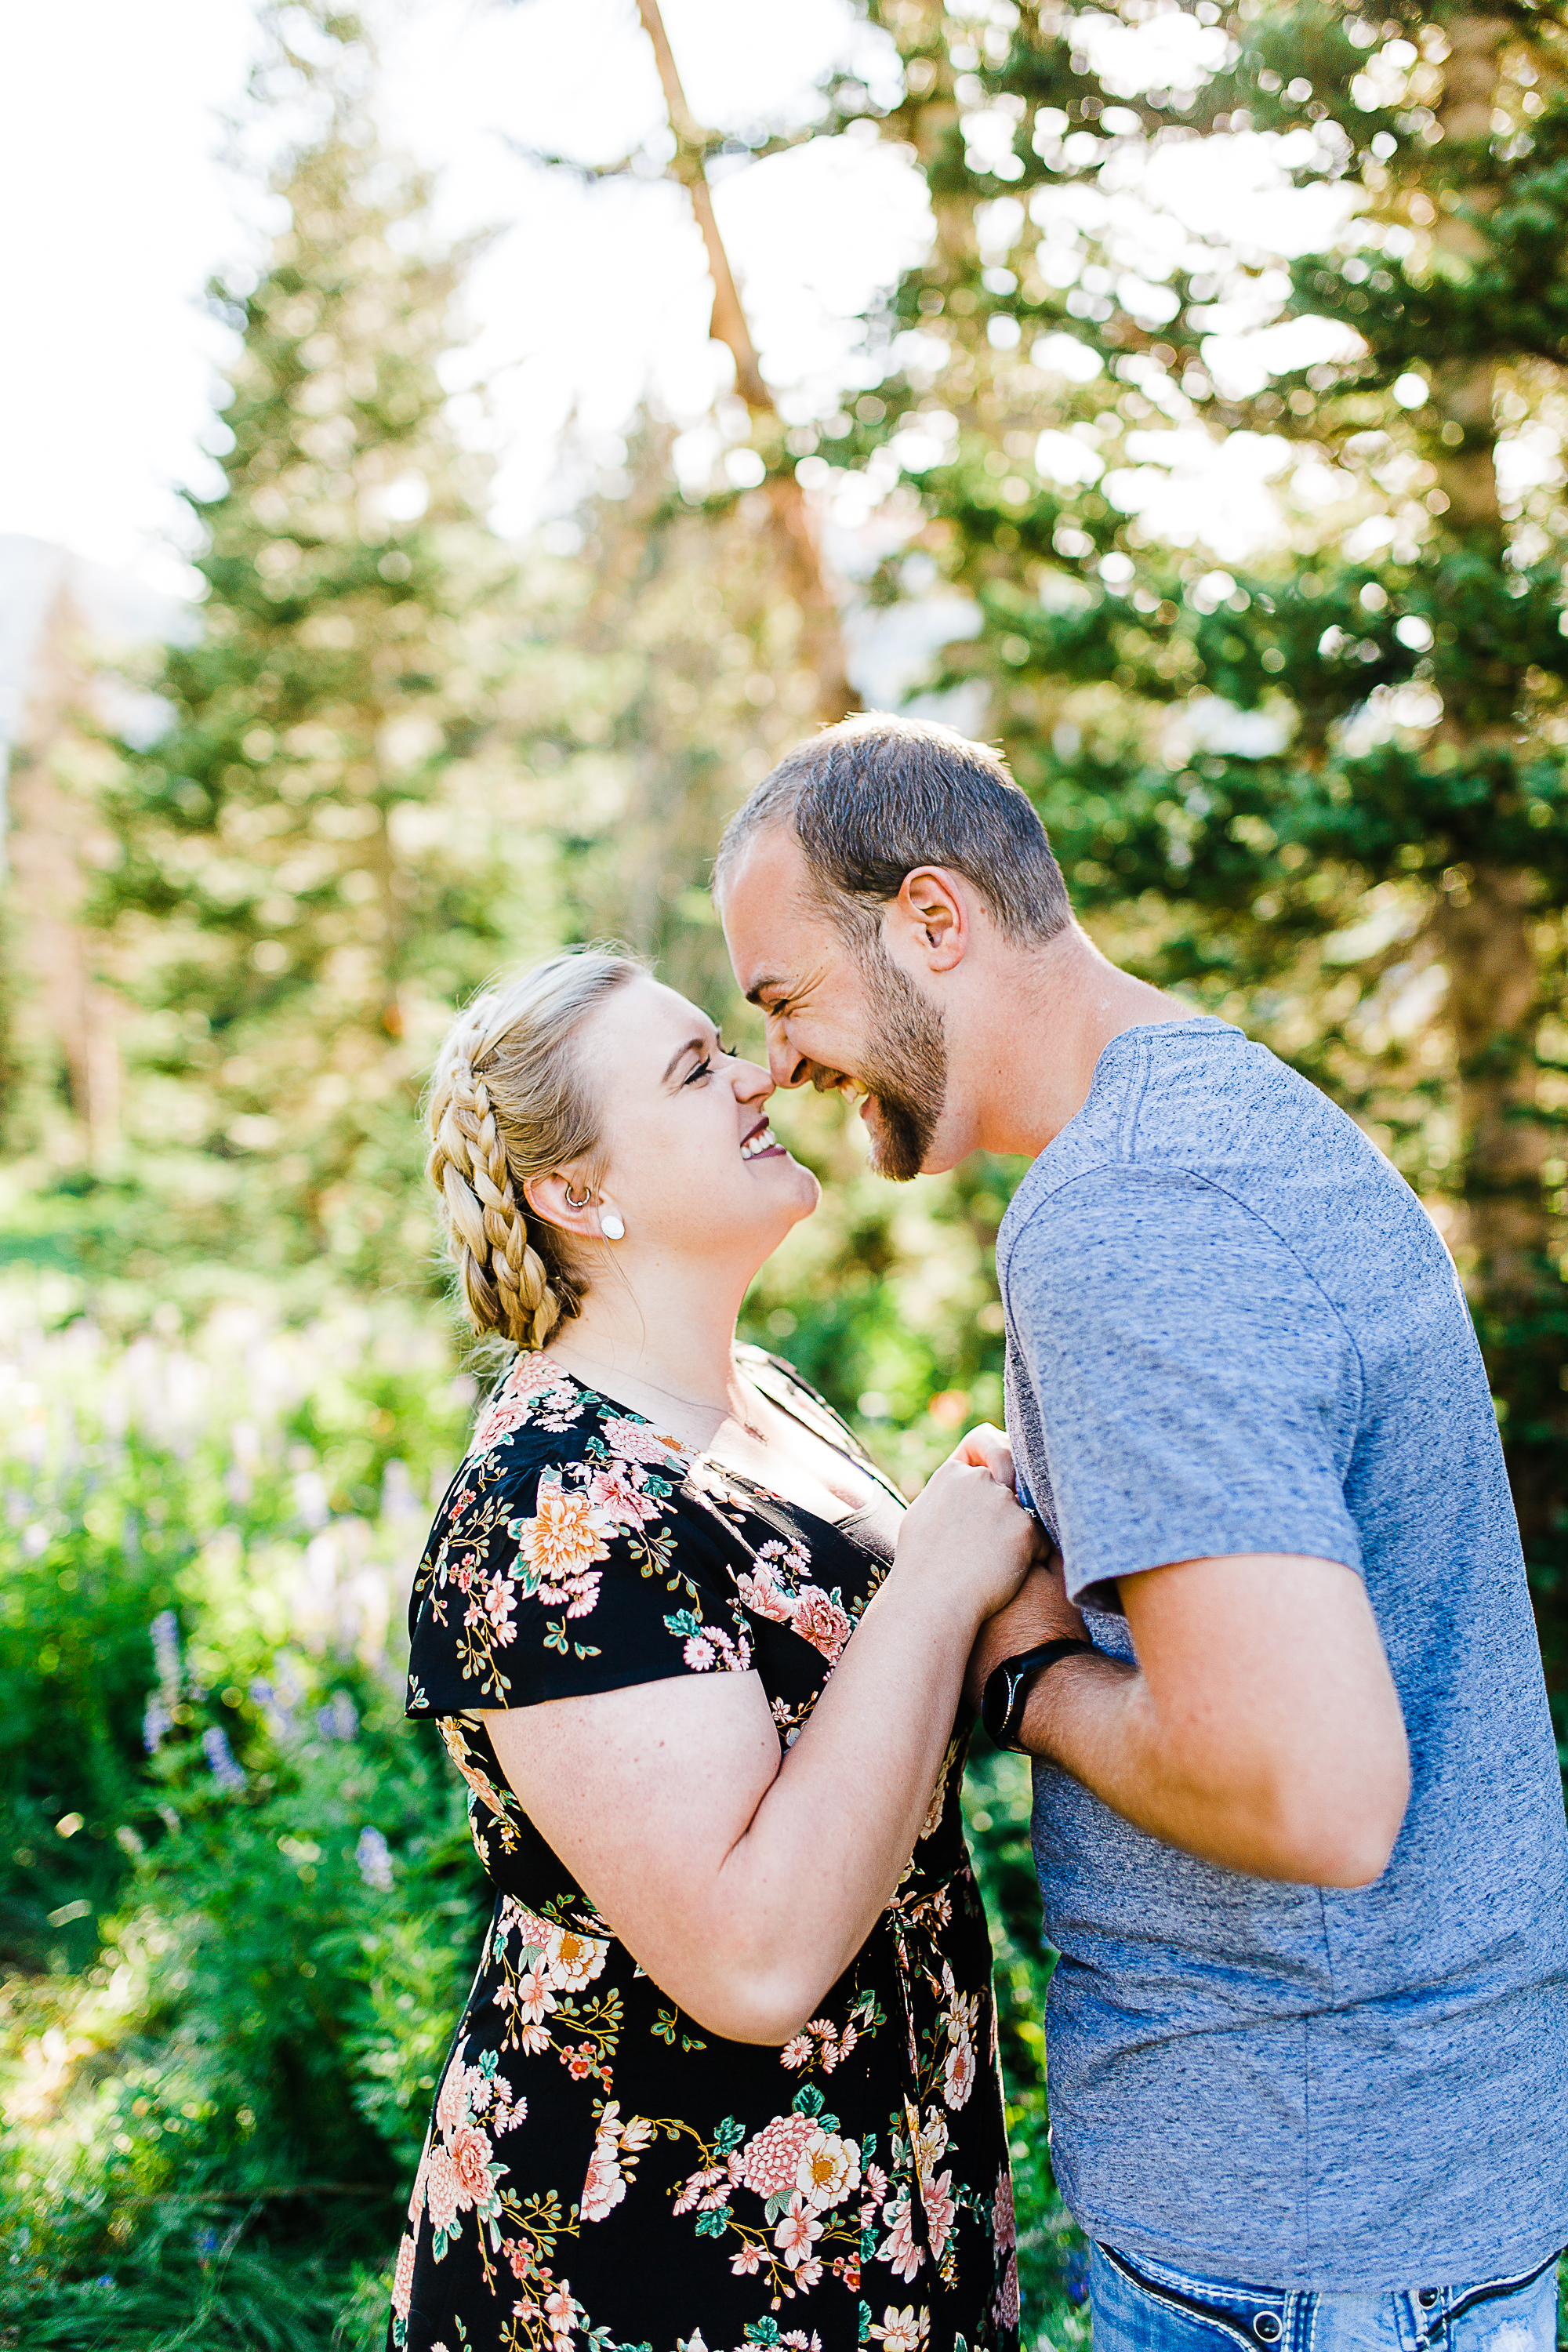 Truly photography | Utah Photographer Prices